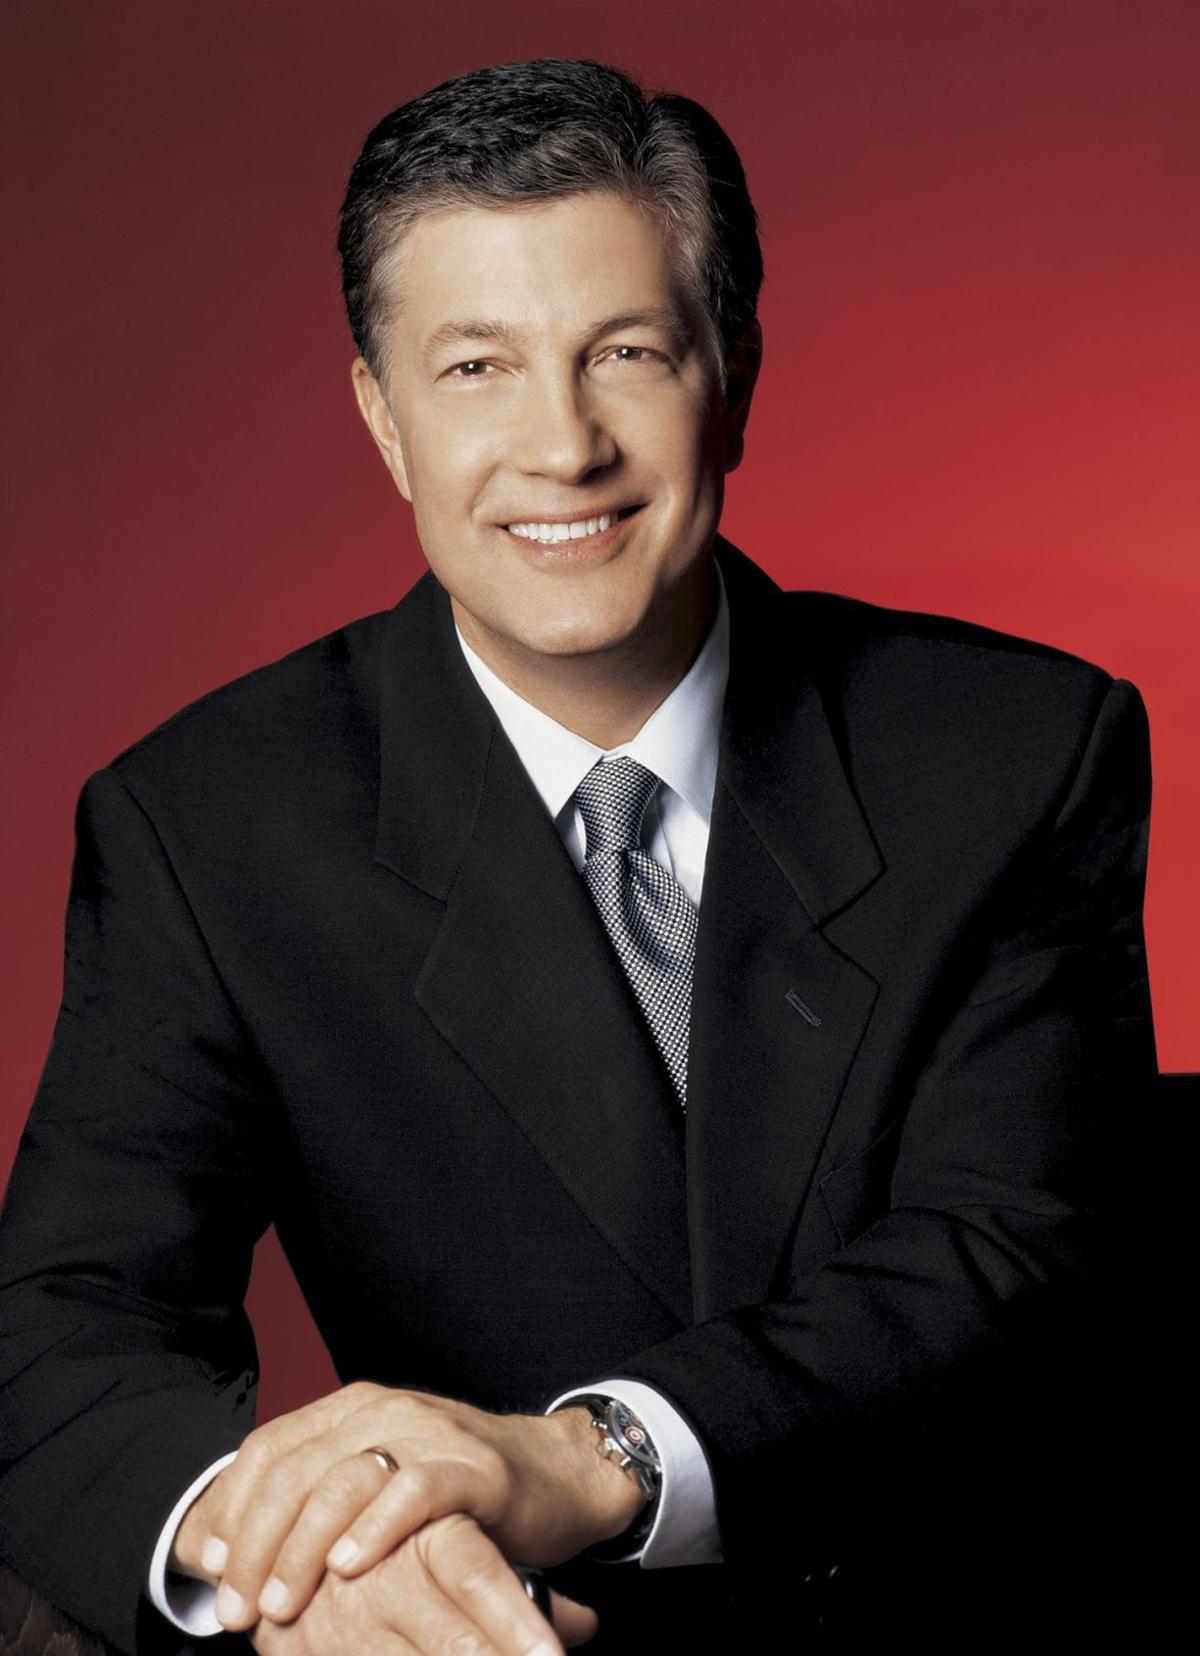 Target's Chairman and CEO out in wake of breach